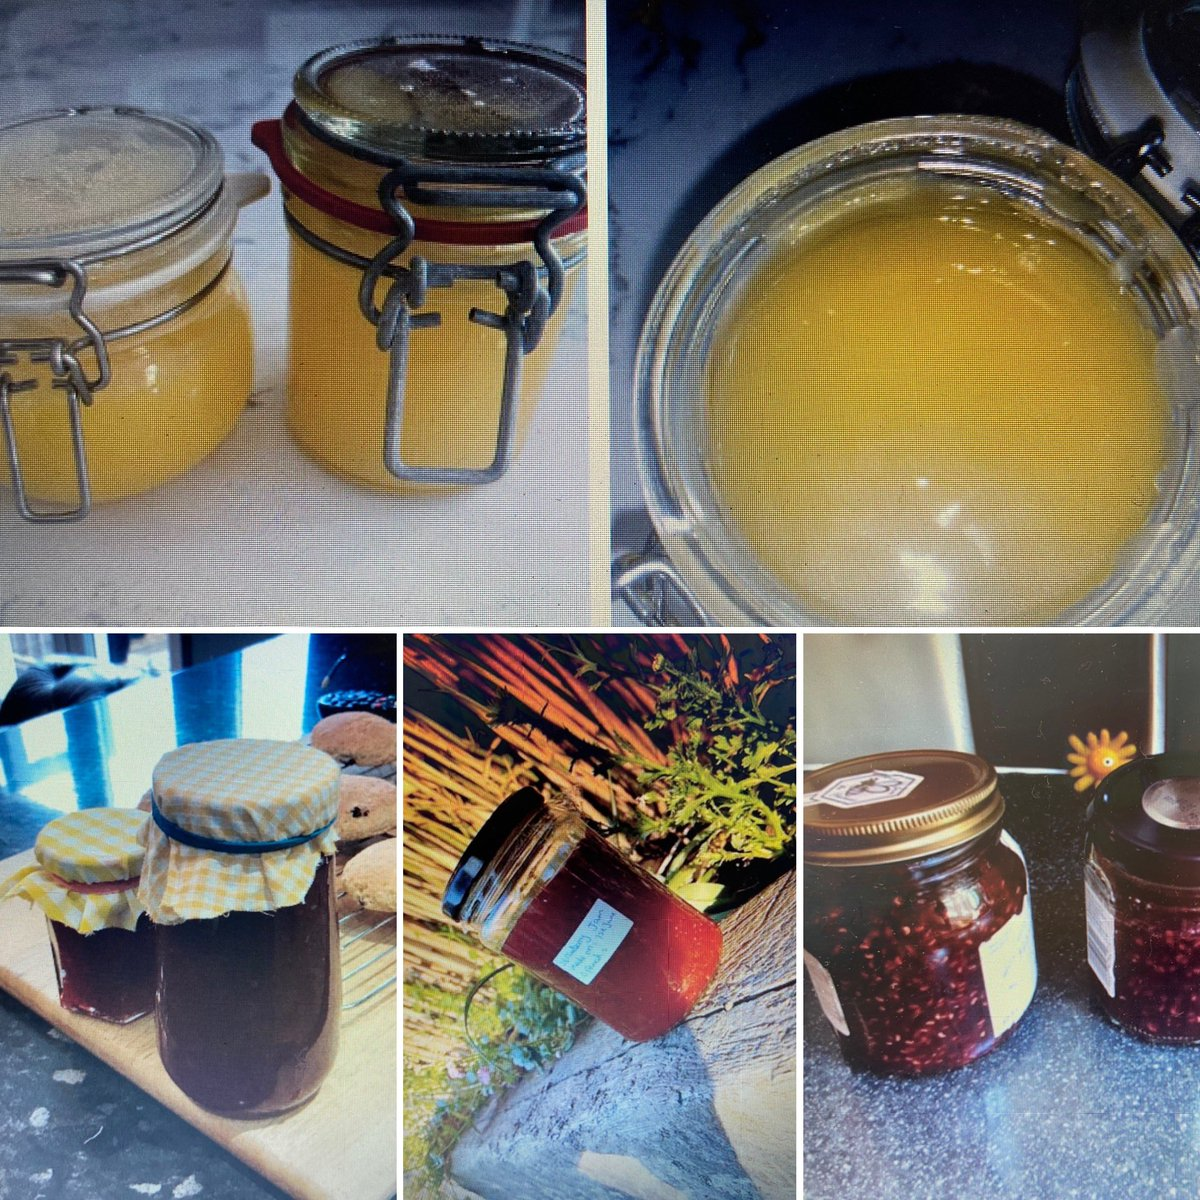 #TGSYear9 have been making #jam  looking forward to seeing what recipes they use their jam in next week!  @TheGreggSchoolpic.twitter.com/J2rvgQ1Y2x